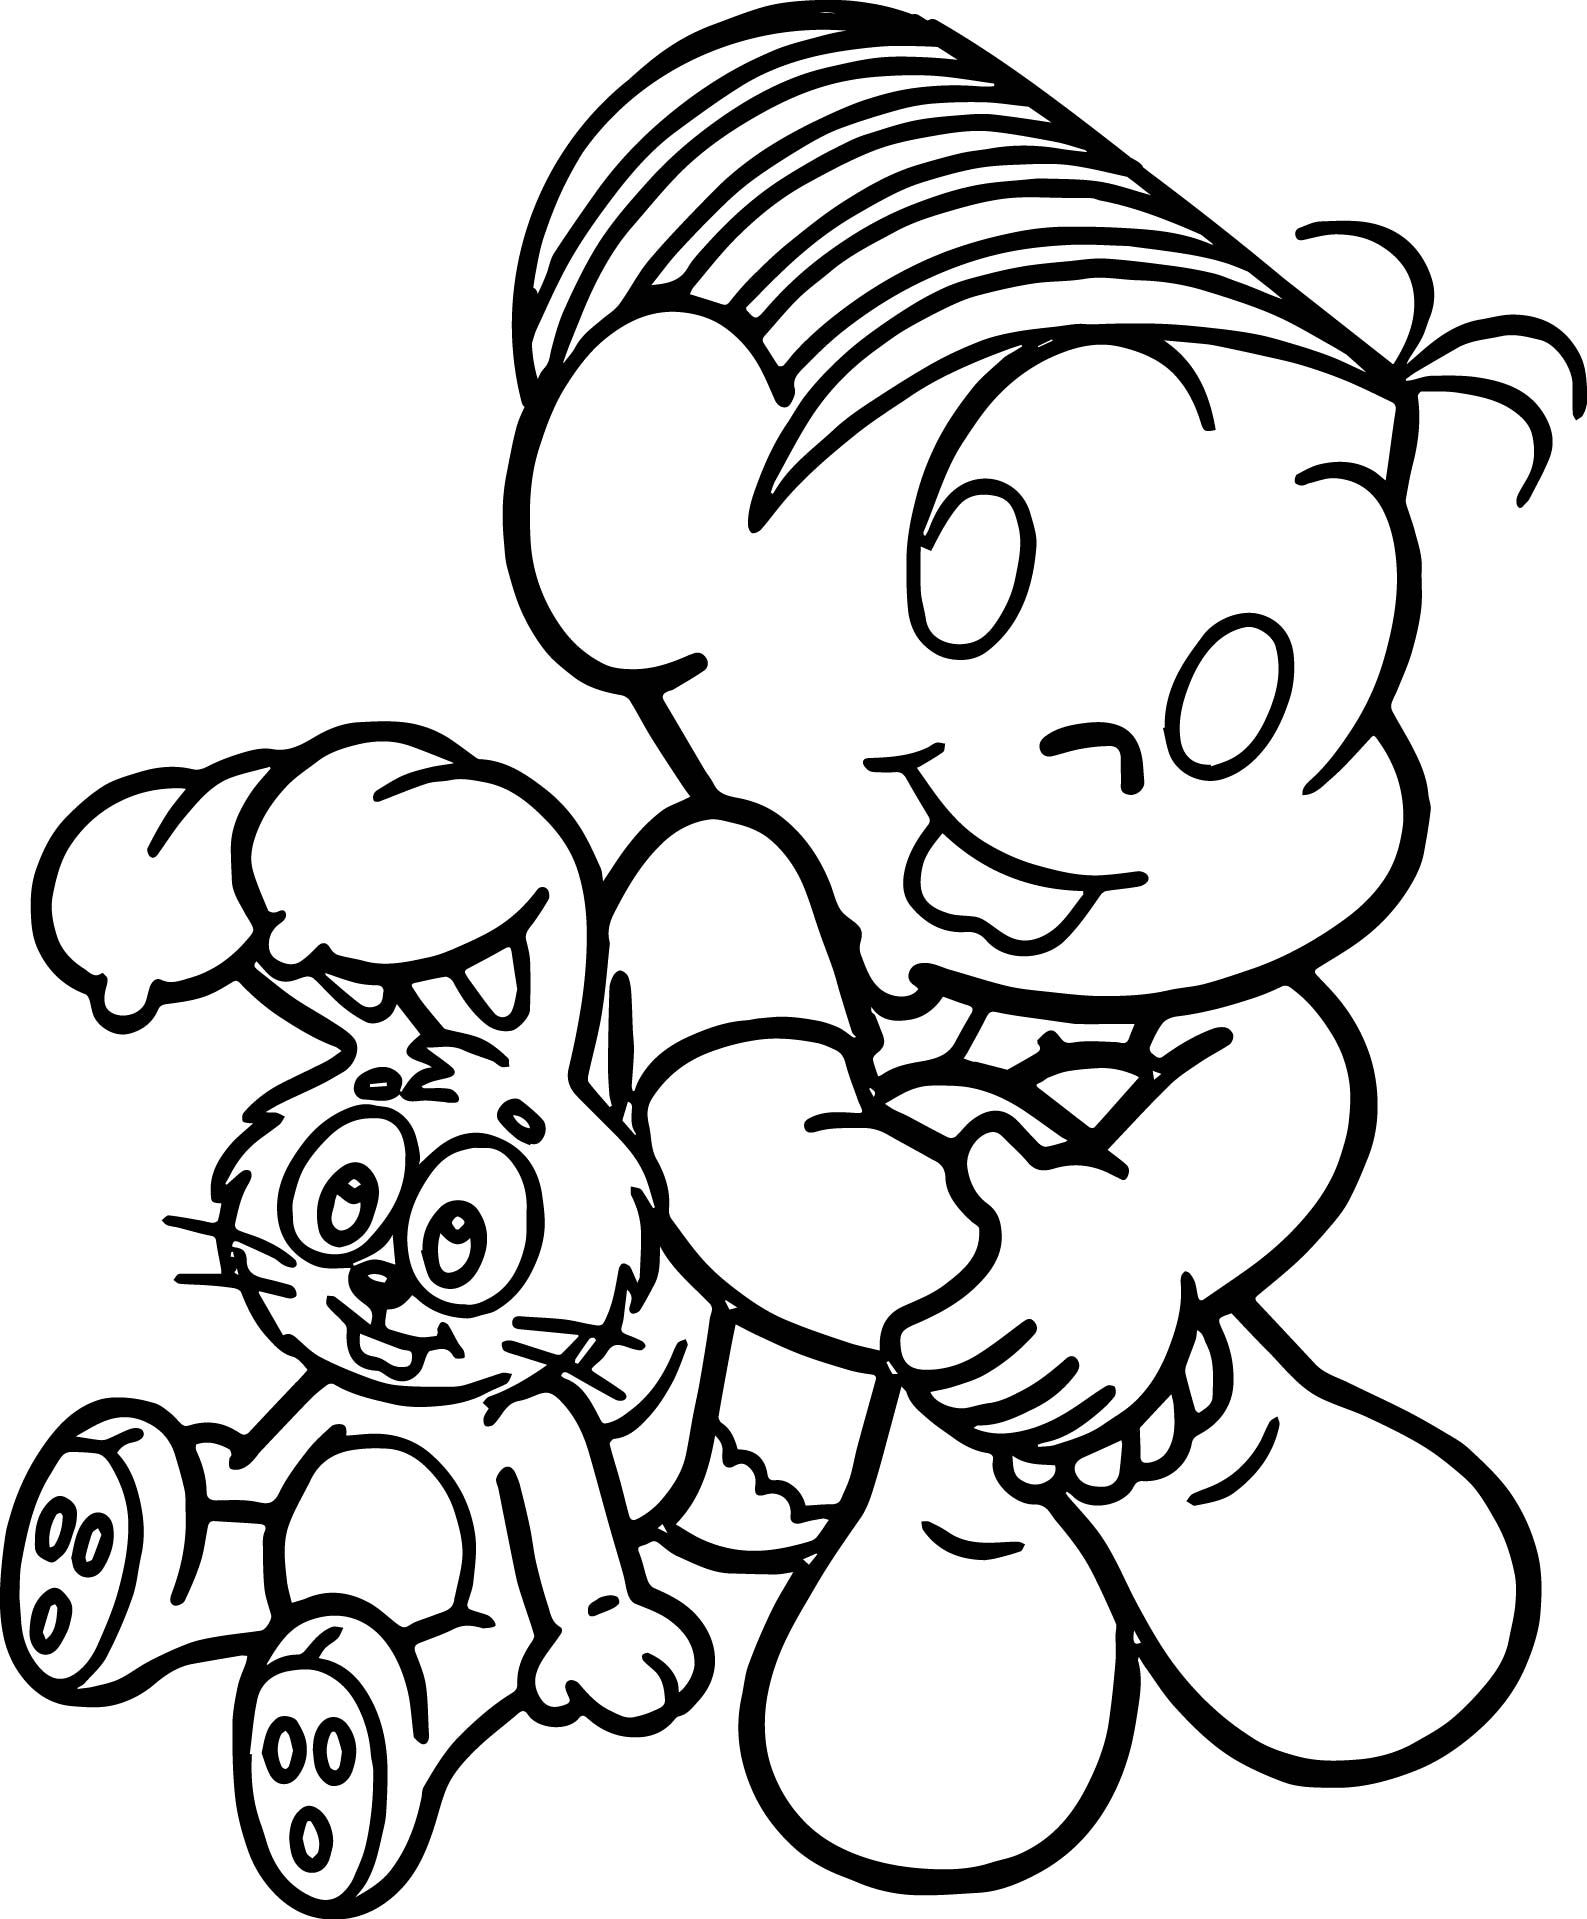 Cool Girl Monica And Toy Bunny Cute Coloring Page Cute Coloring